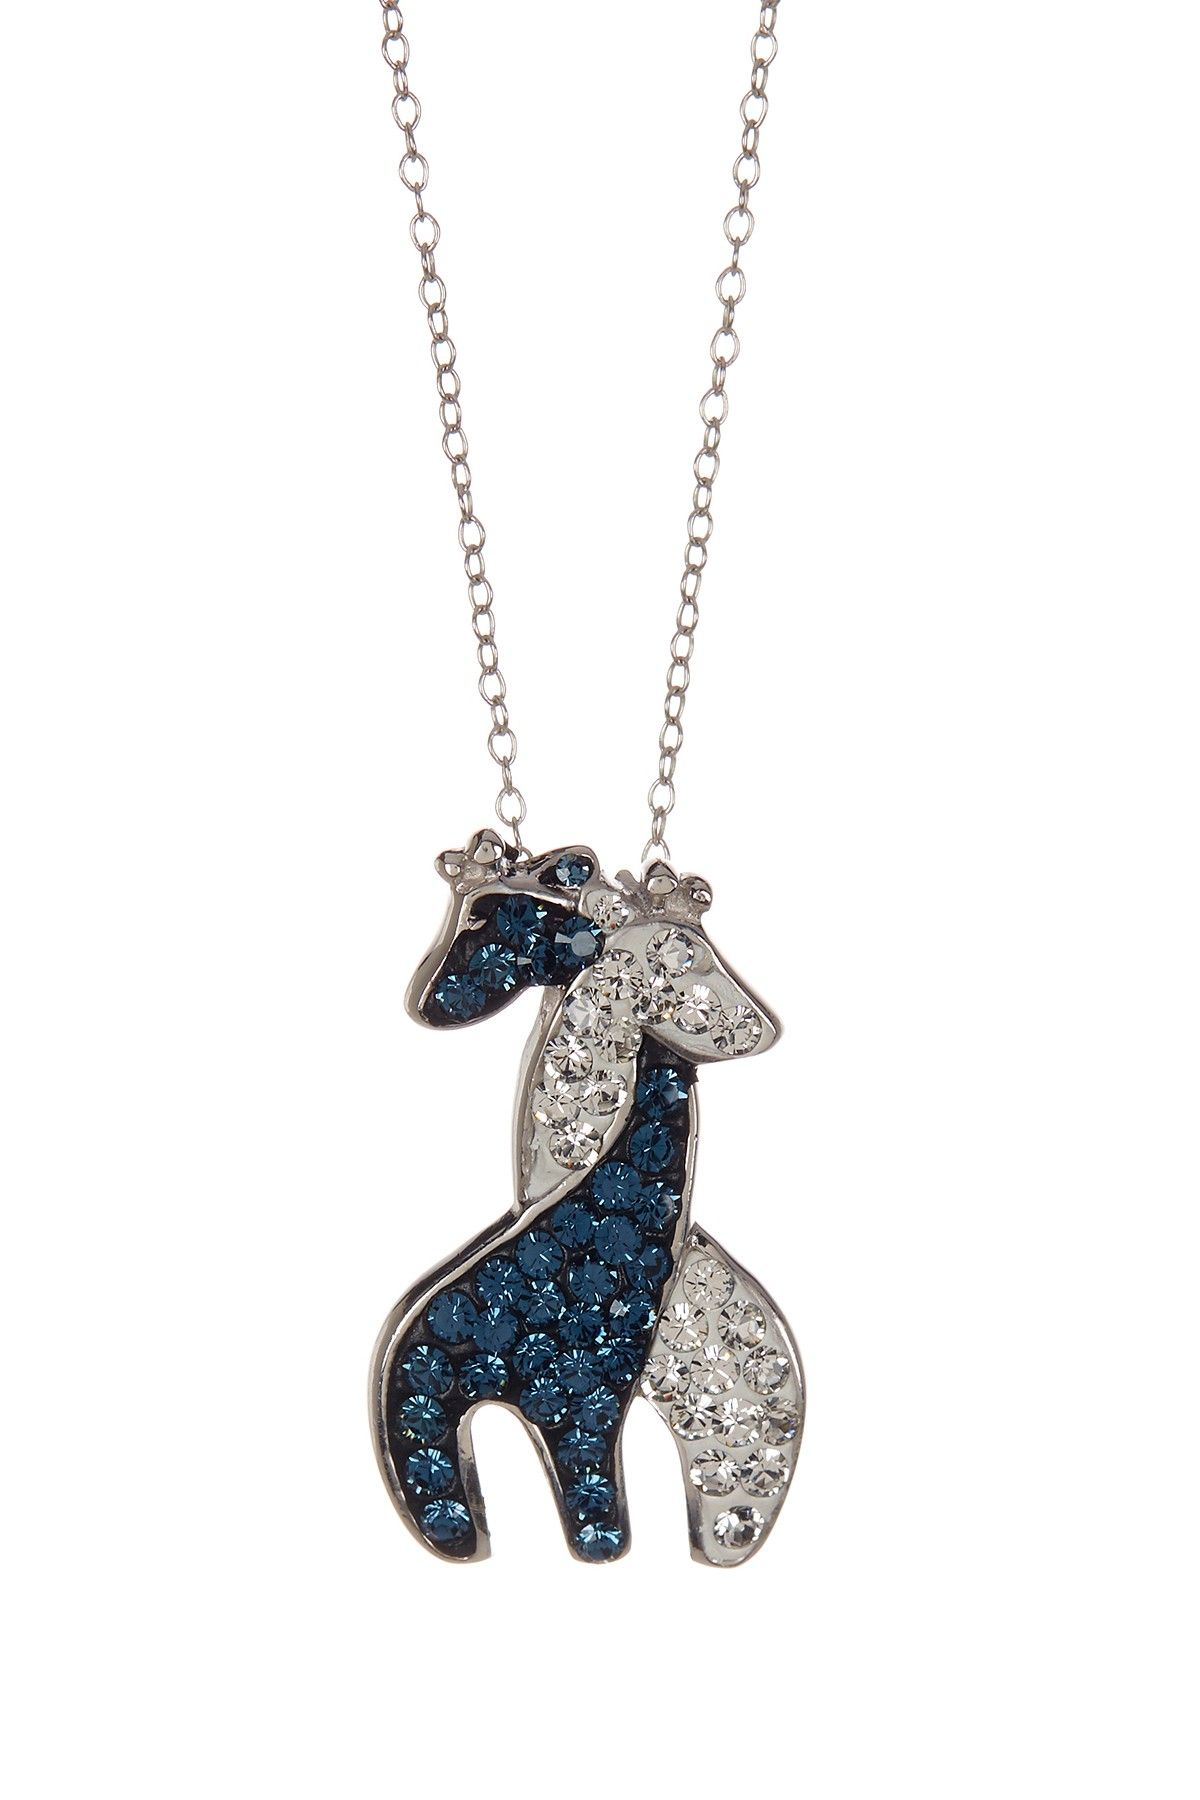 store love necklace giraffe in now gold pendant silver